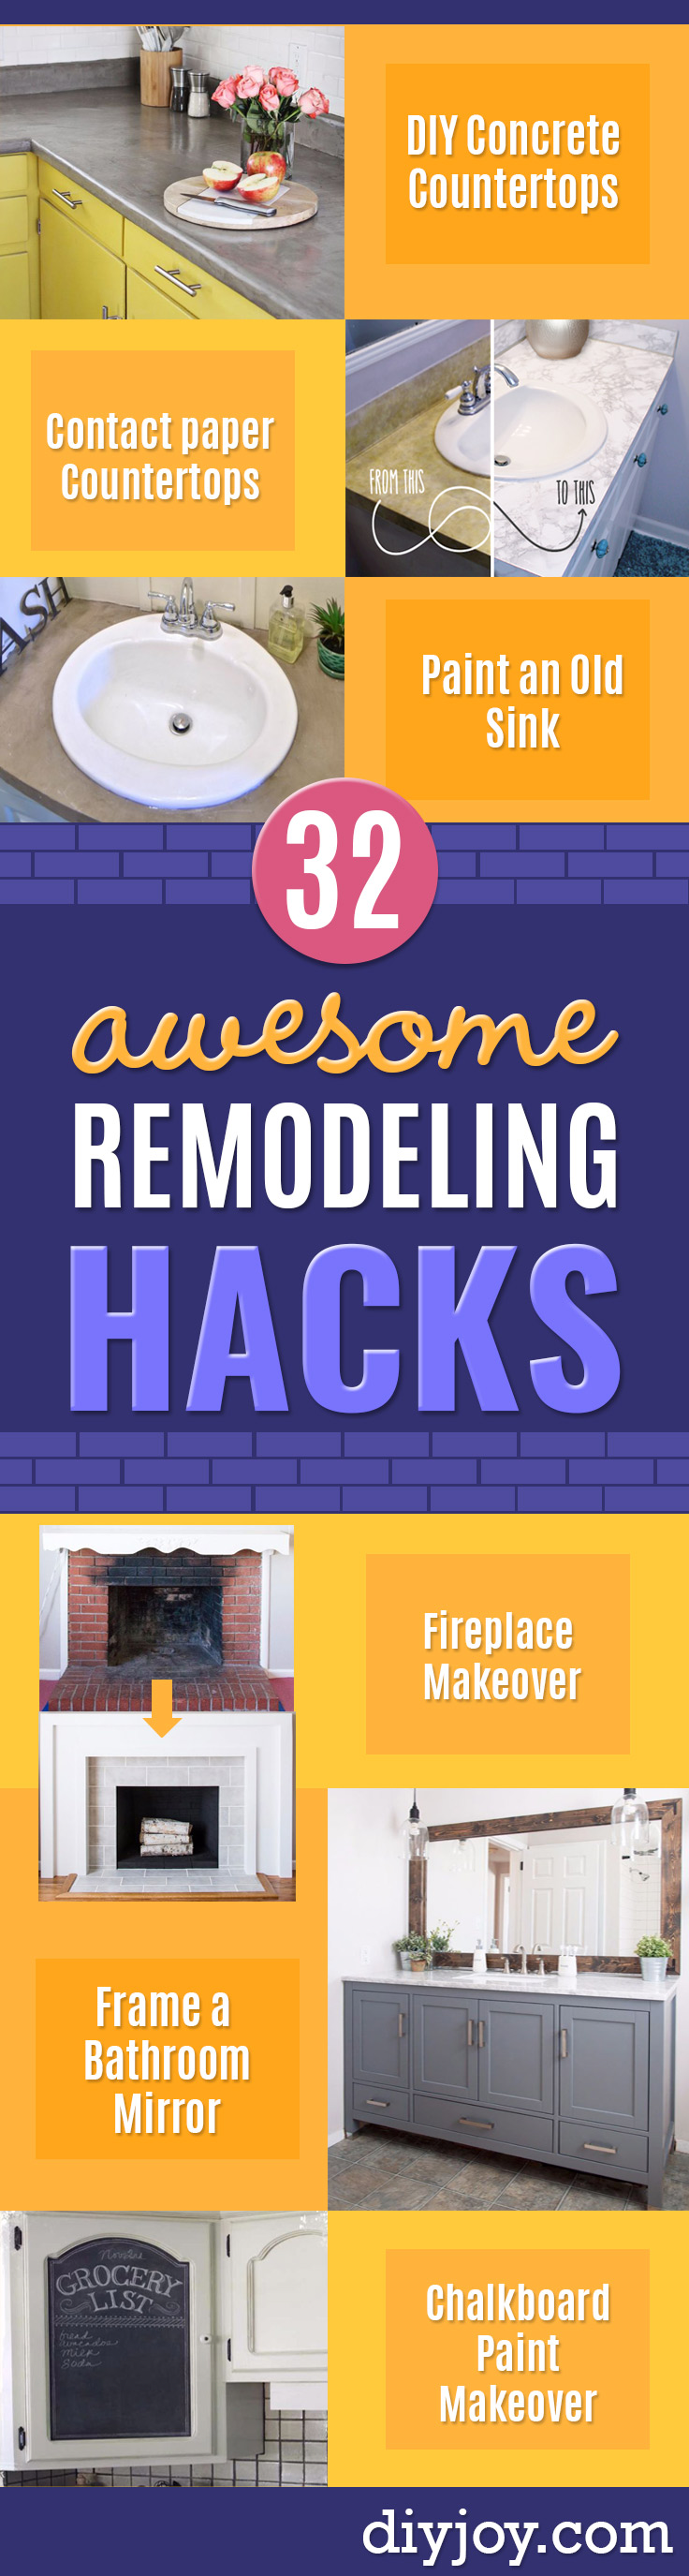 DIY Remodeling Hacks - Quick and Easy Home Repair Tips and Tricks - Cool Hacks for DIY Home Improvement Ideas - Cheap Ways To Fix Bathroom, Bedroom, Kitchen, Outdoor, Living Room and Lighting - Creative Renovation on A Budget - DIY Projects and Crafts by DIY JOY